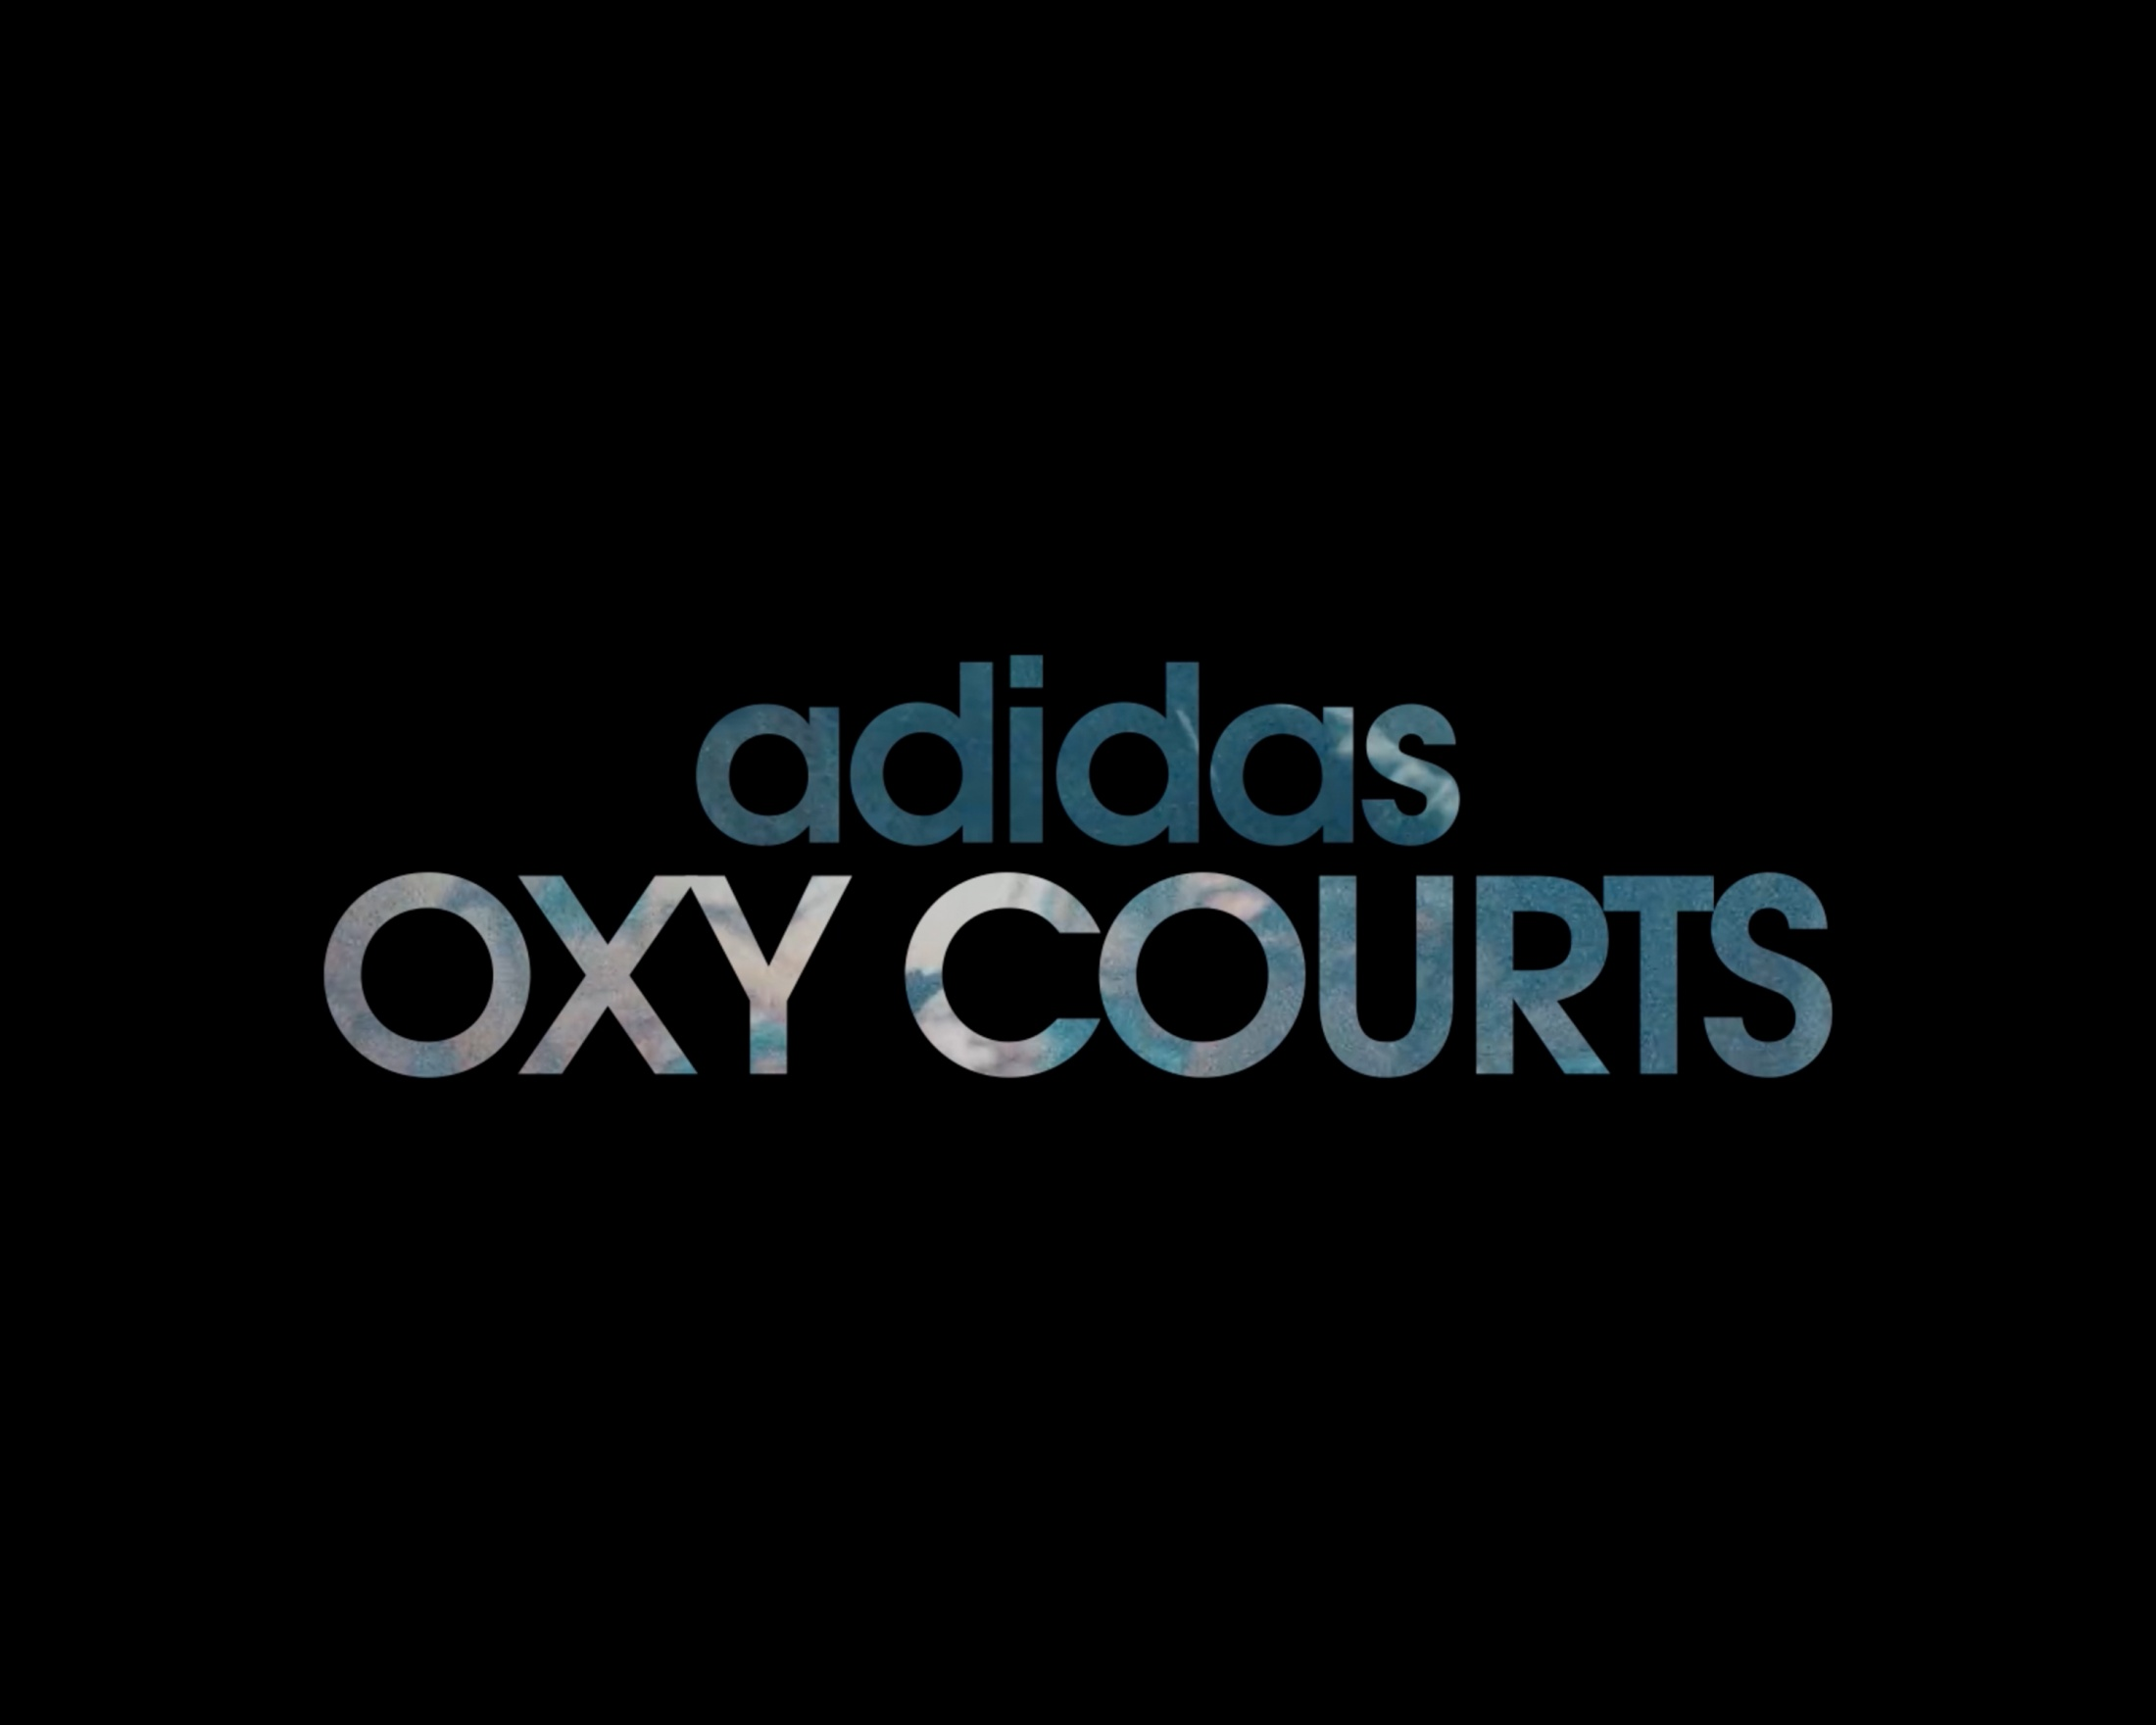 Thumbnail for Adidas OxyCourts